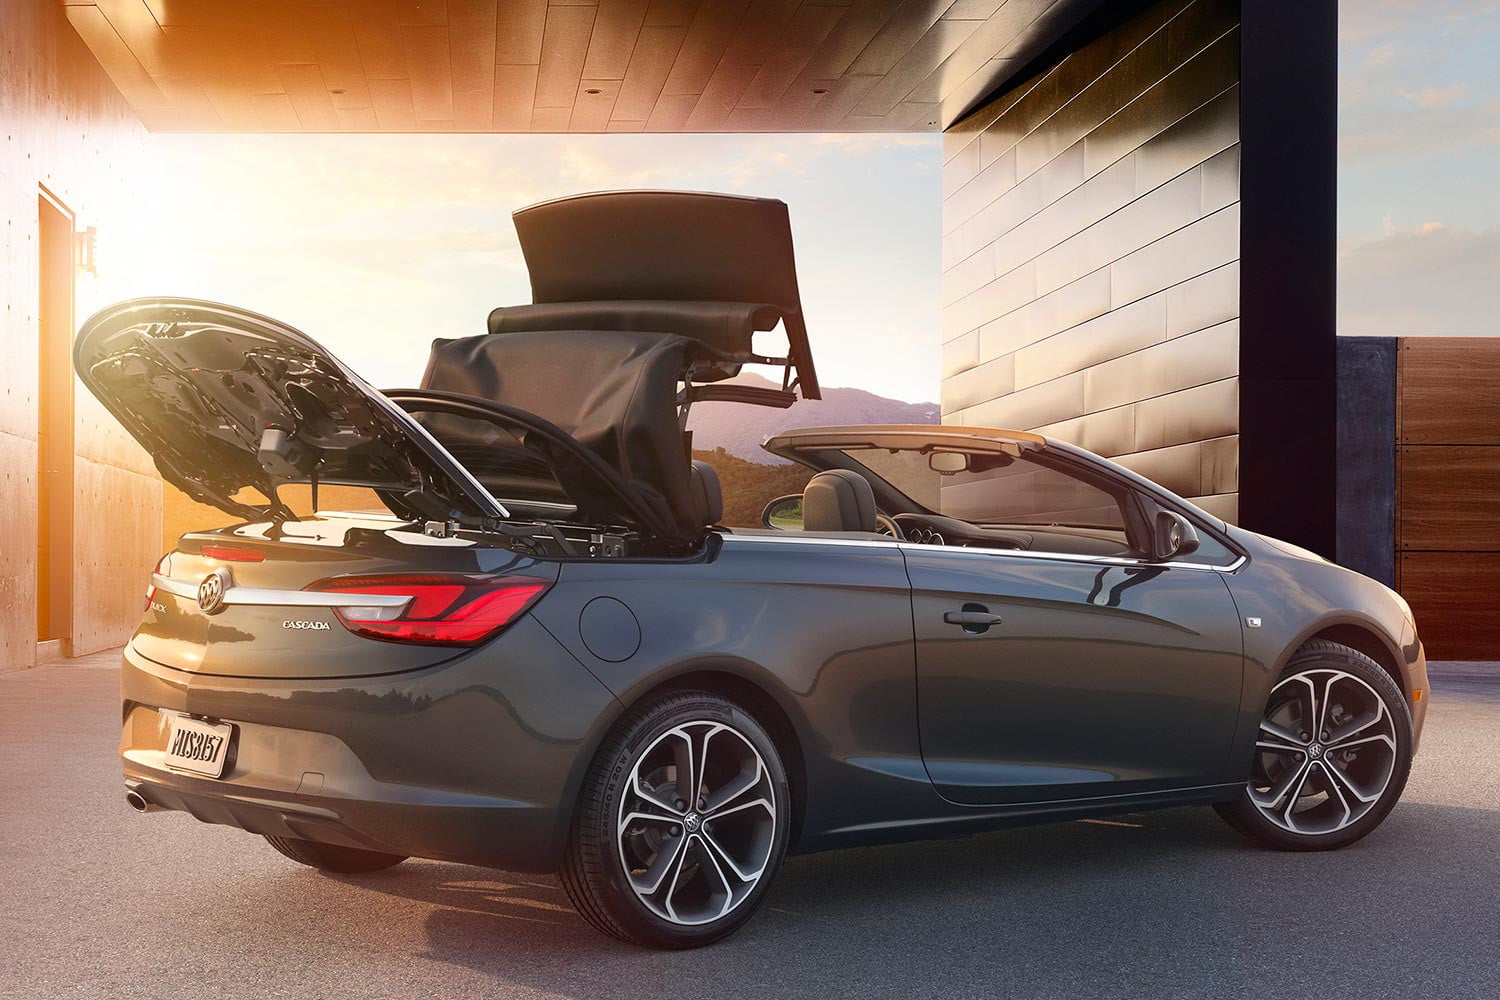 2016 buick cascada first drive review digital trends. Black Bedroom Furniture Sets. Home Design Ideas